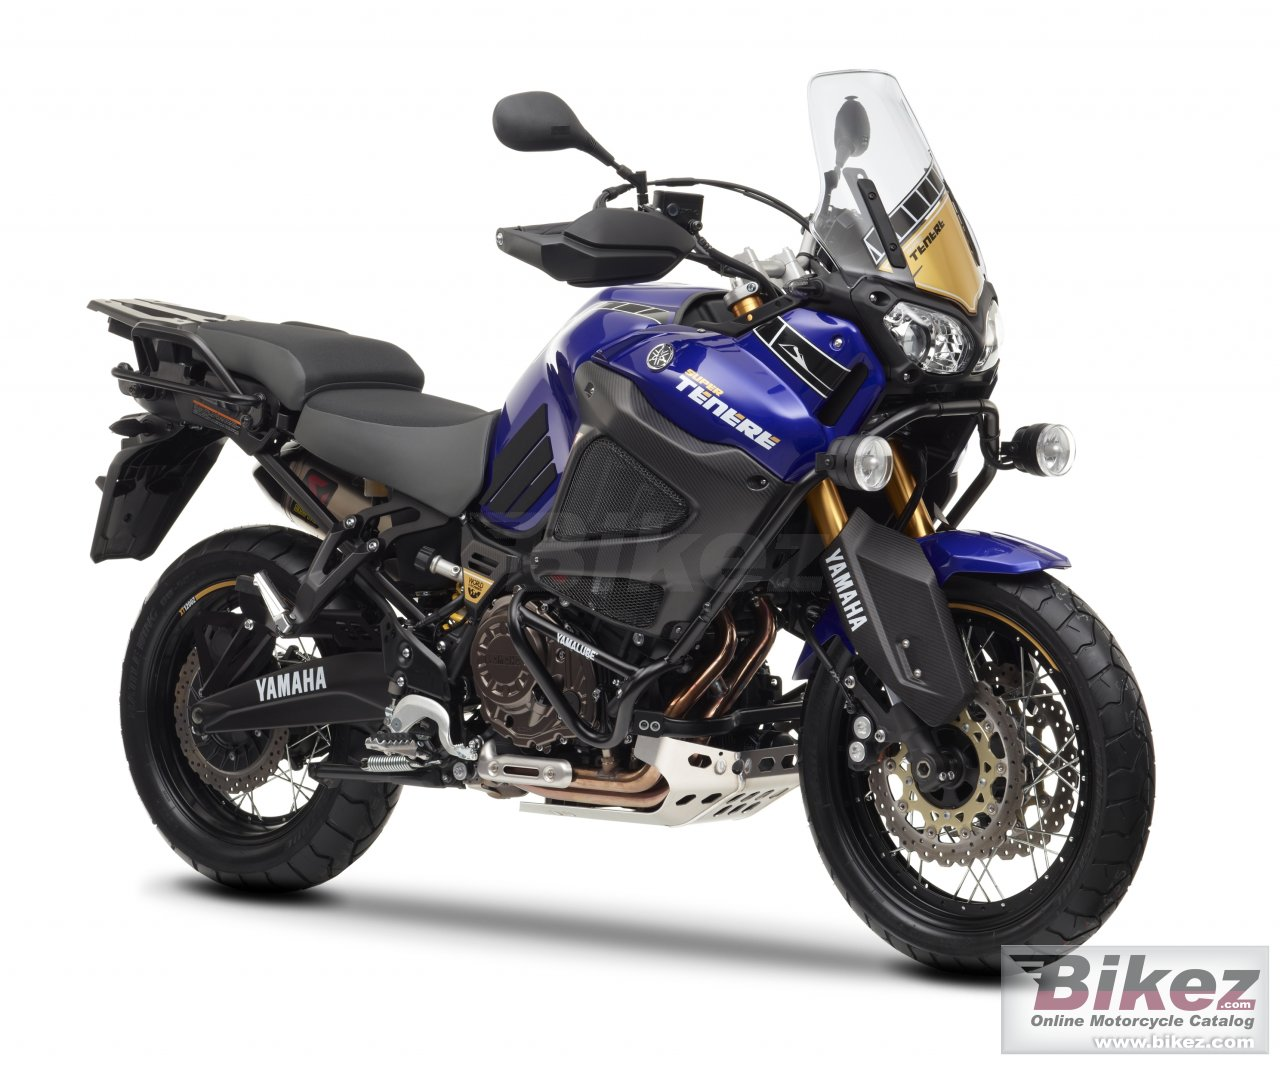 Big Yamaha xtz1200 super tenere worldcrosser picture and wallpaper from Bikez.com